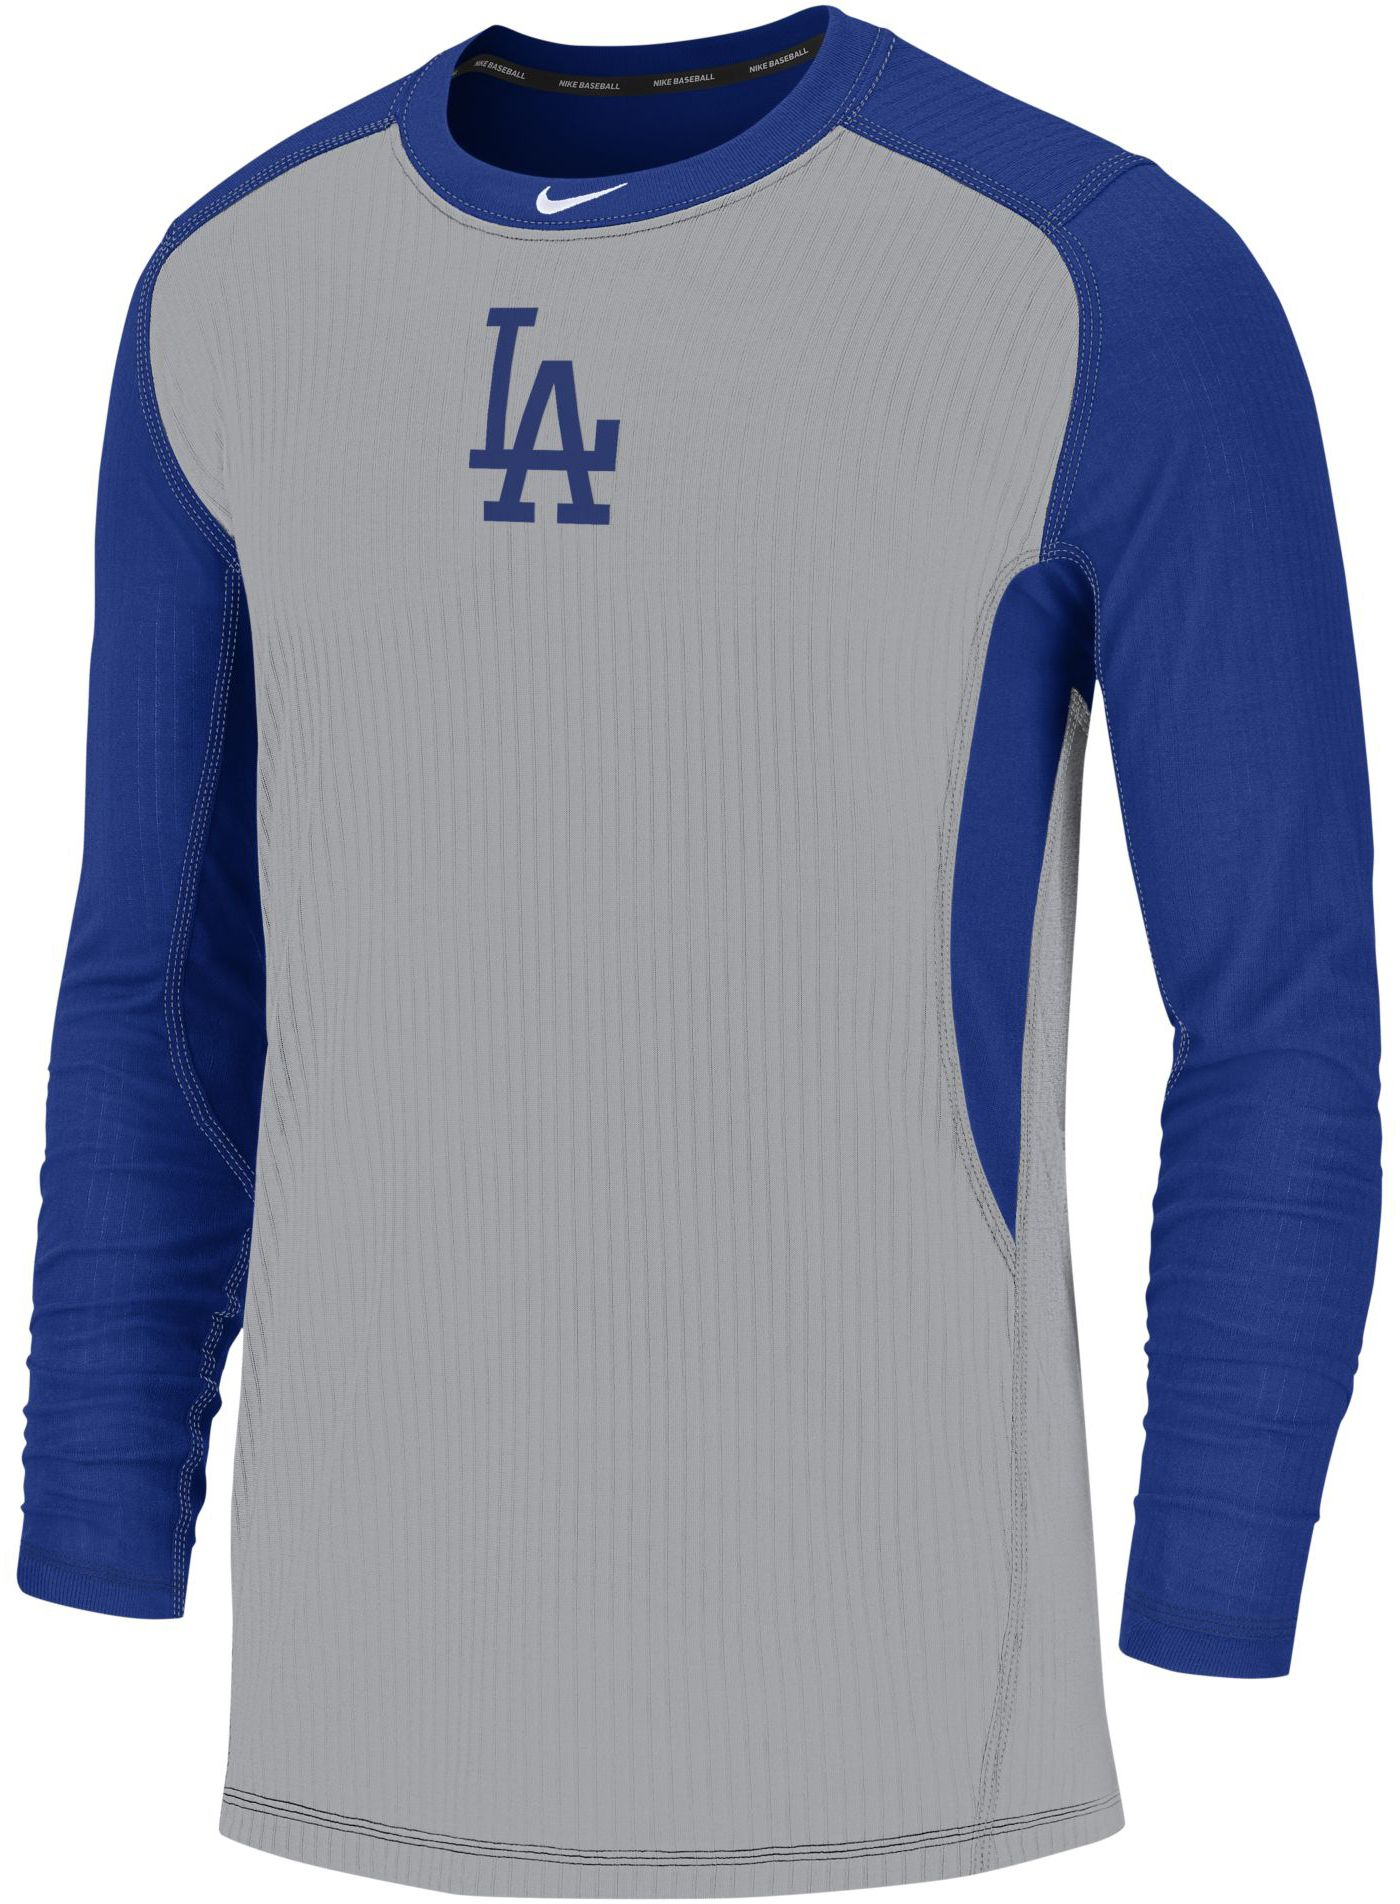 Nike Men's Los Angeles Dodgers Authentic Collection Dri-FIT Long Sleeve Top